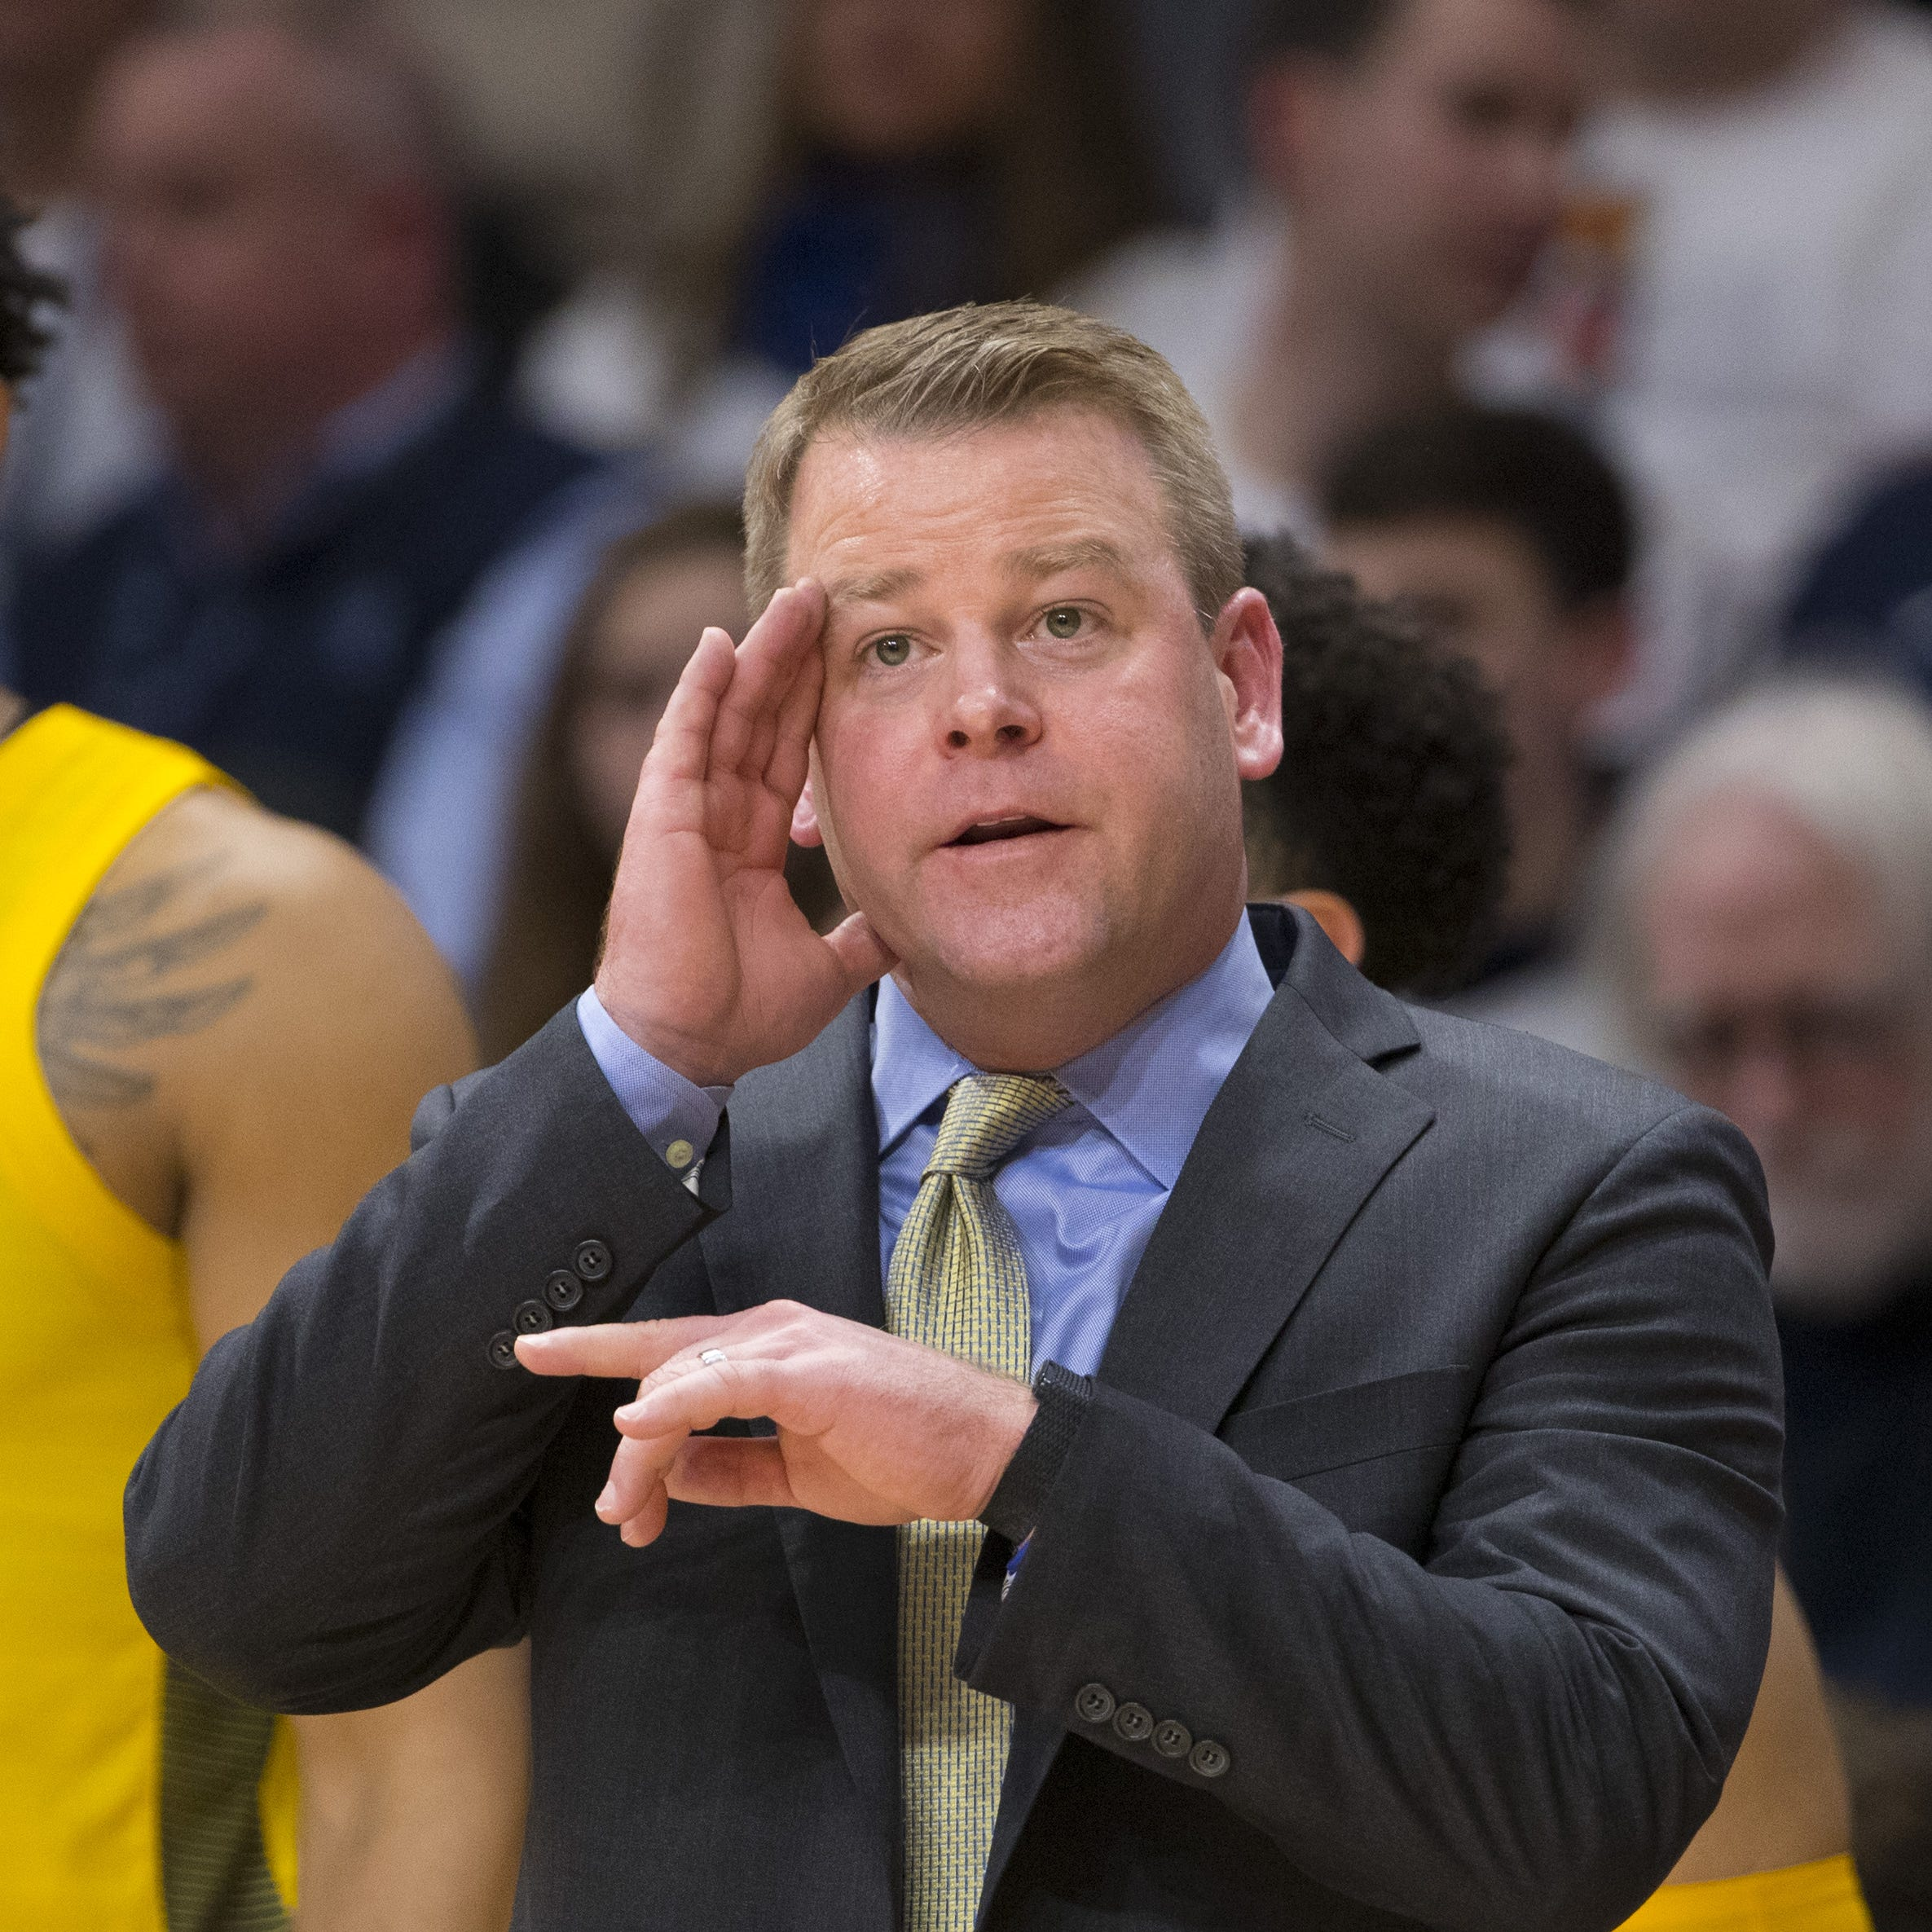 Marquette's Steve Wojciechowski has new contract through 2023-'24